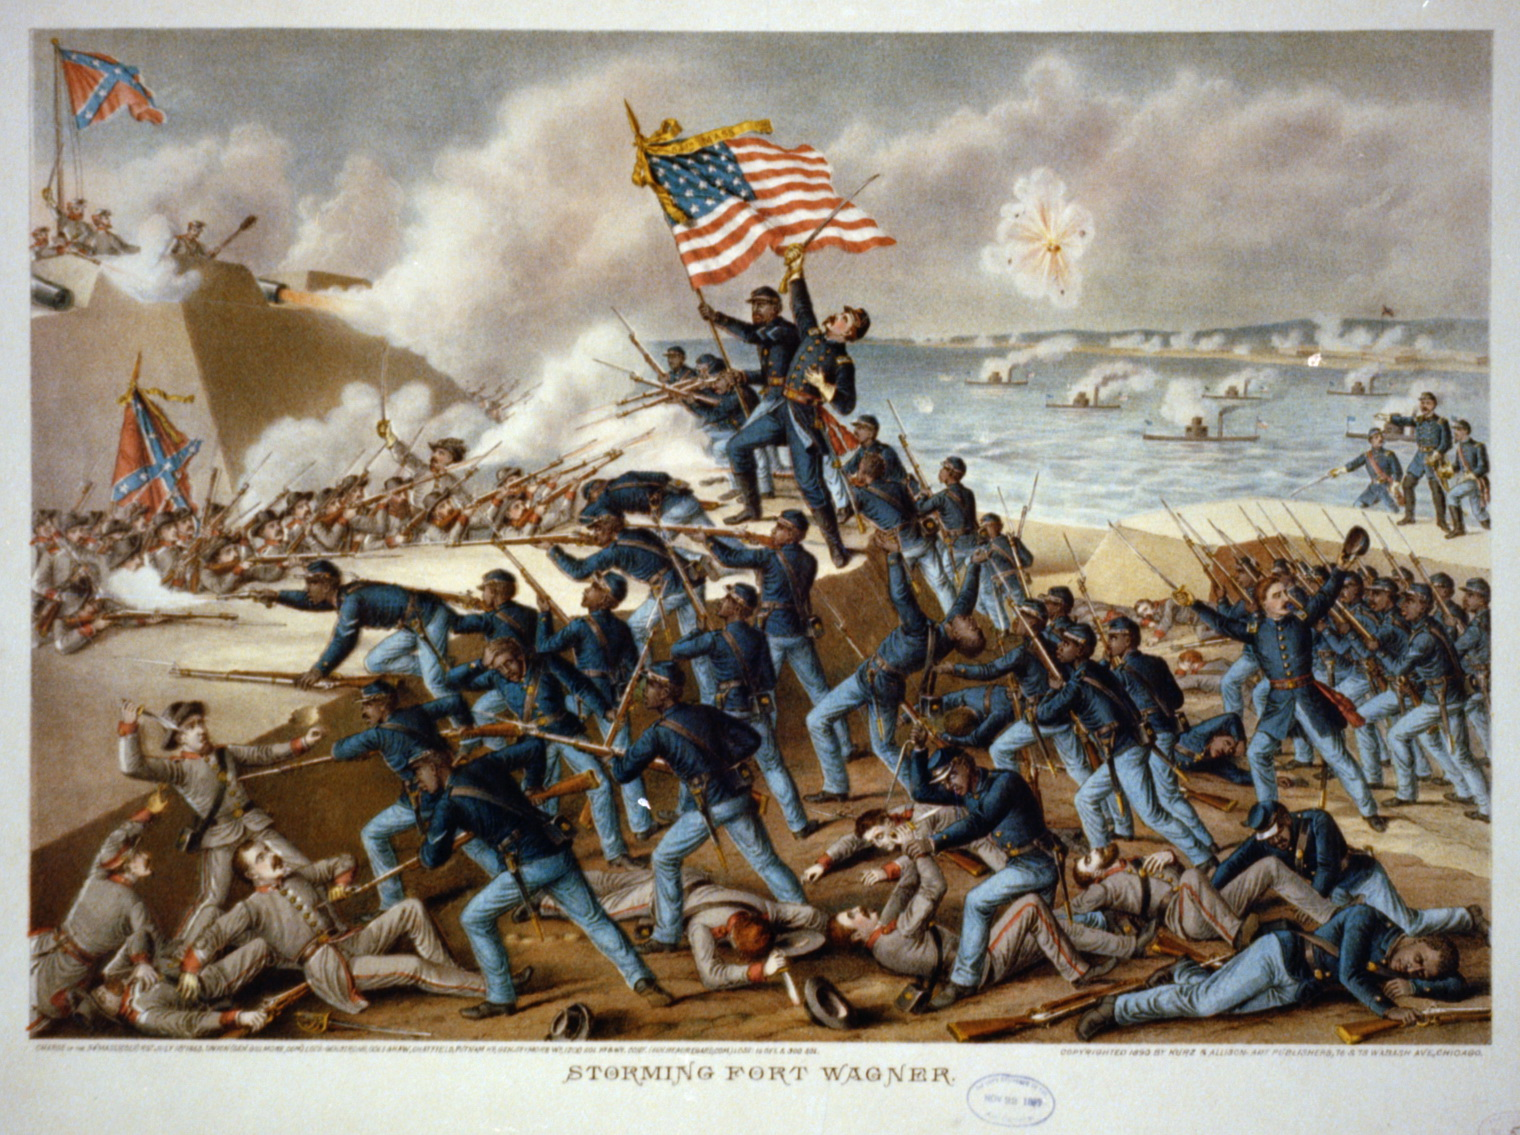 The famous 54th Massachusetts Infantry, an all African-American Union regiment during the Civil War.